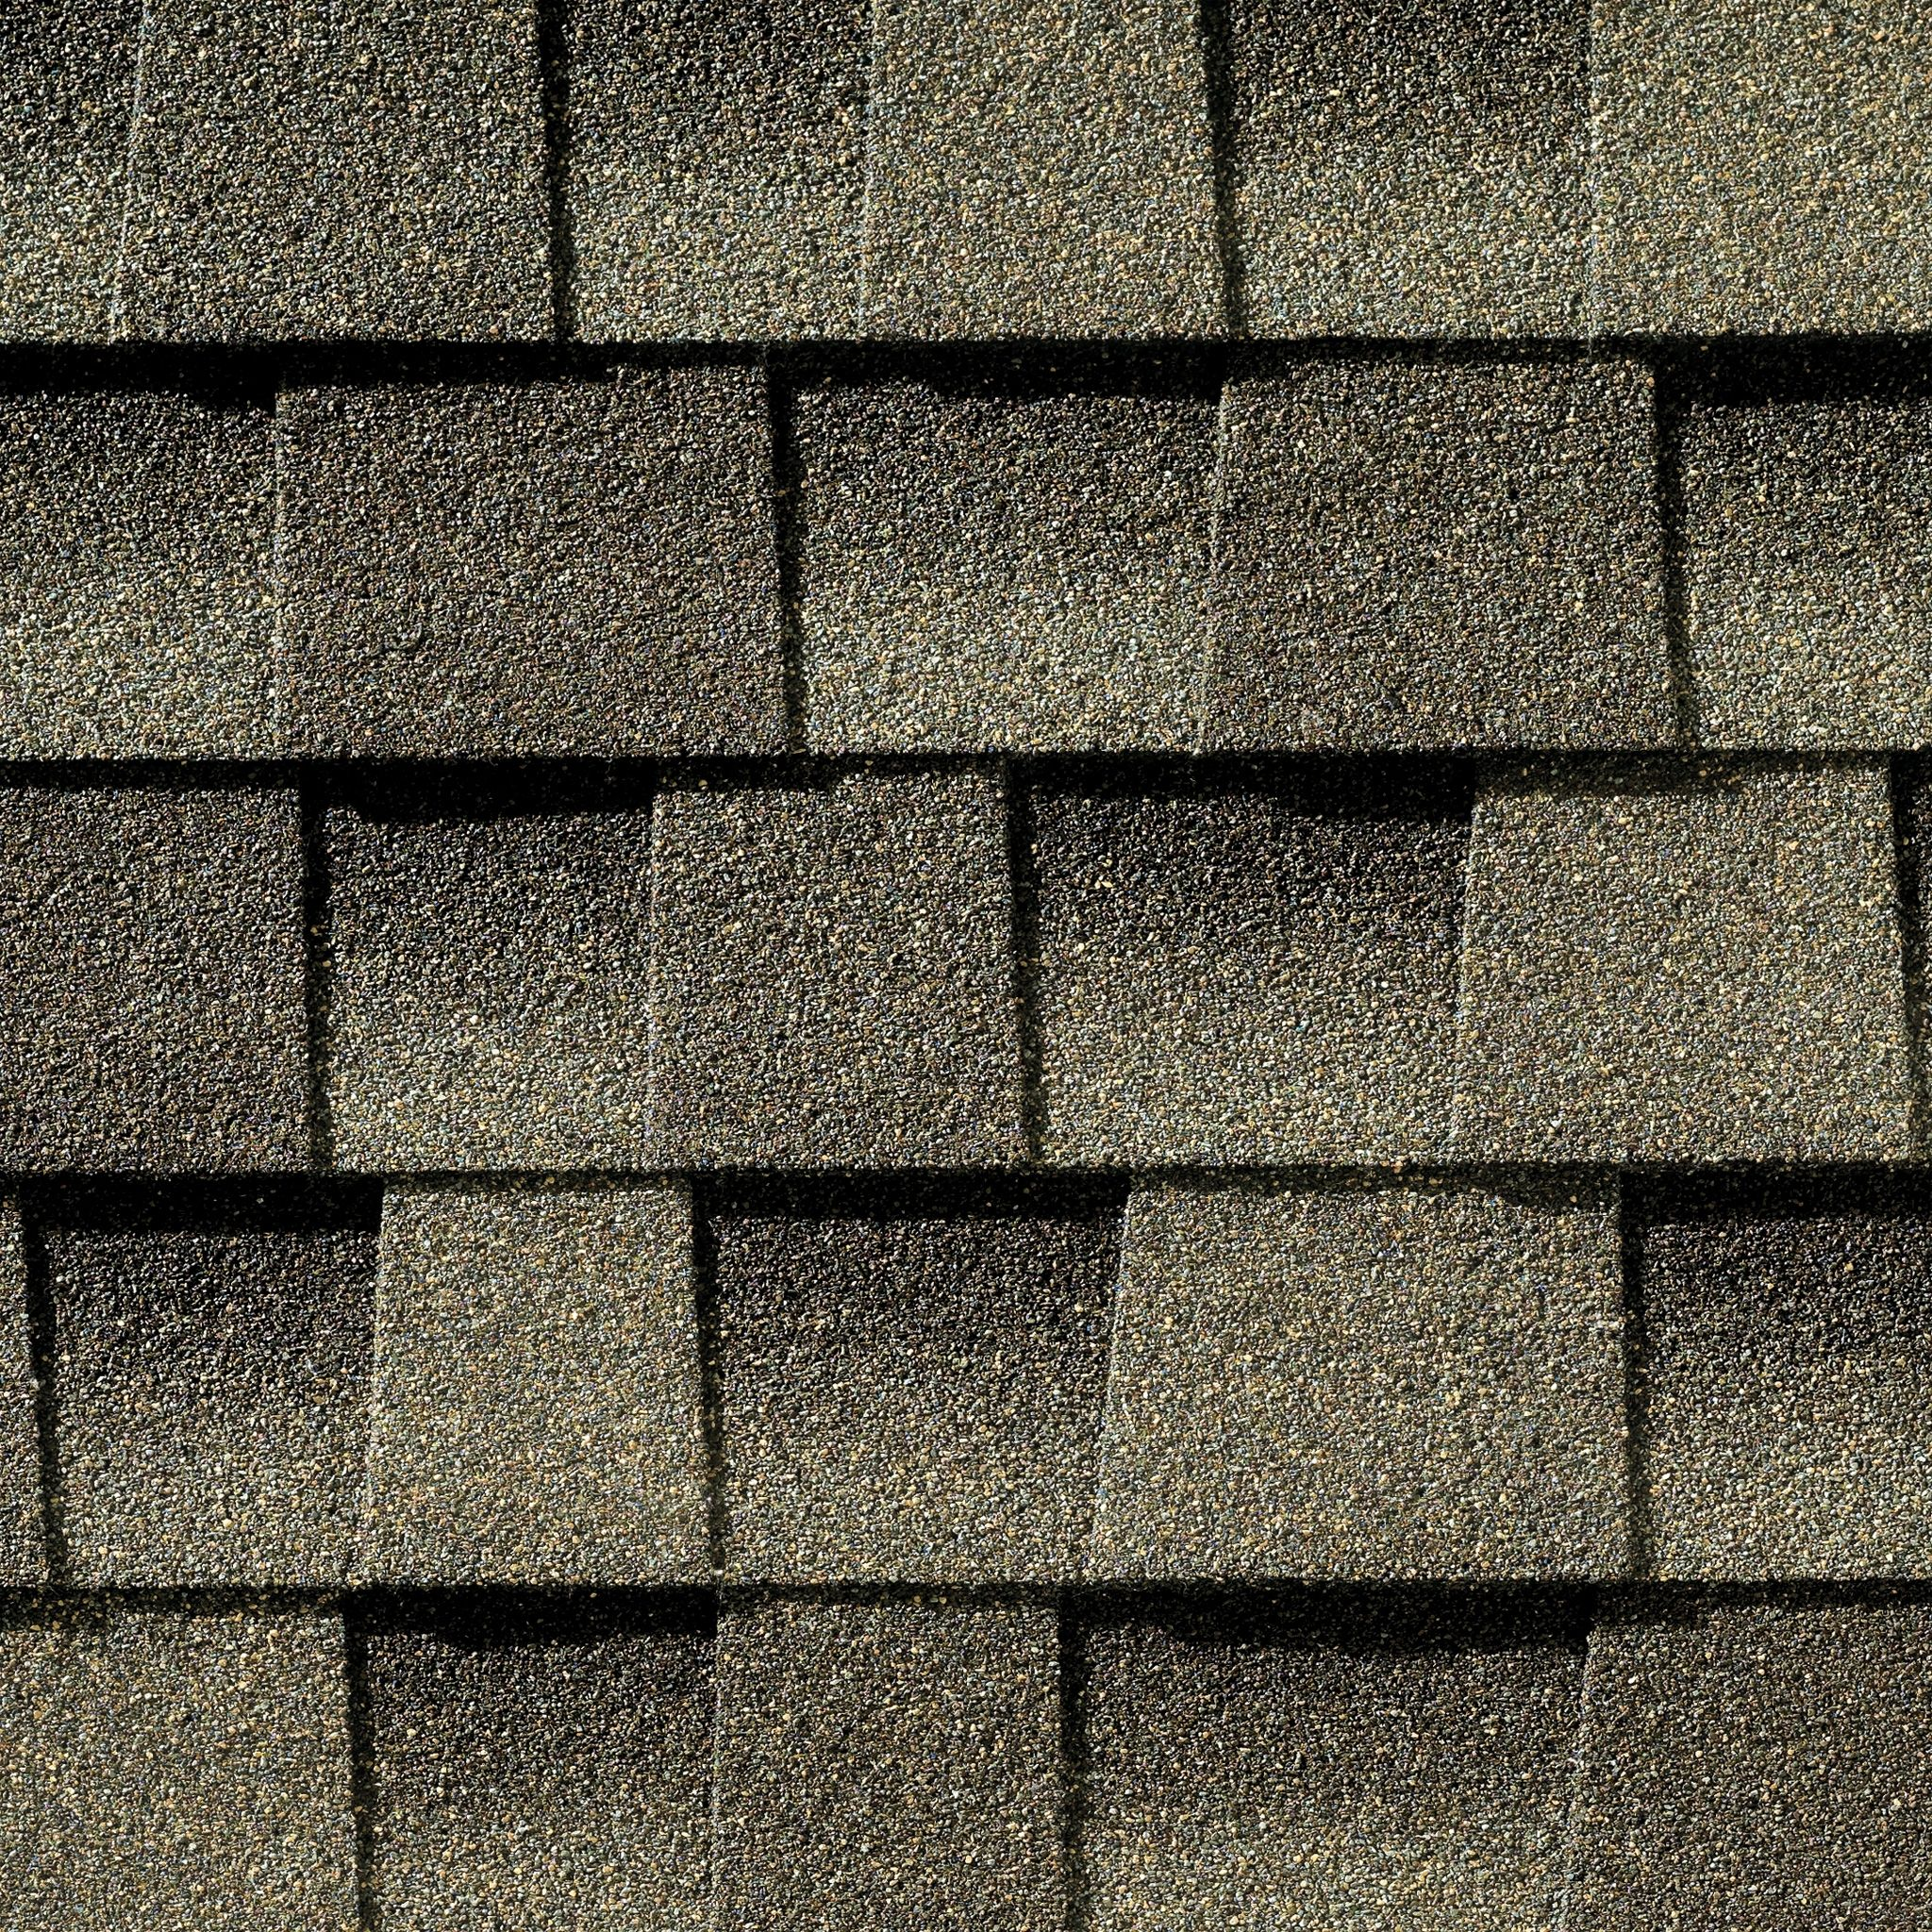 Gaf Timberline Hd Roofing Shingles Architectural Shingles Residential Roofing Shingles Shingling